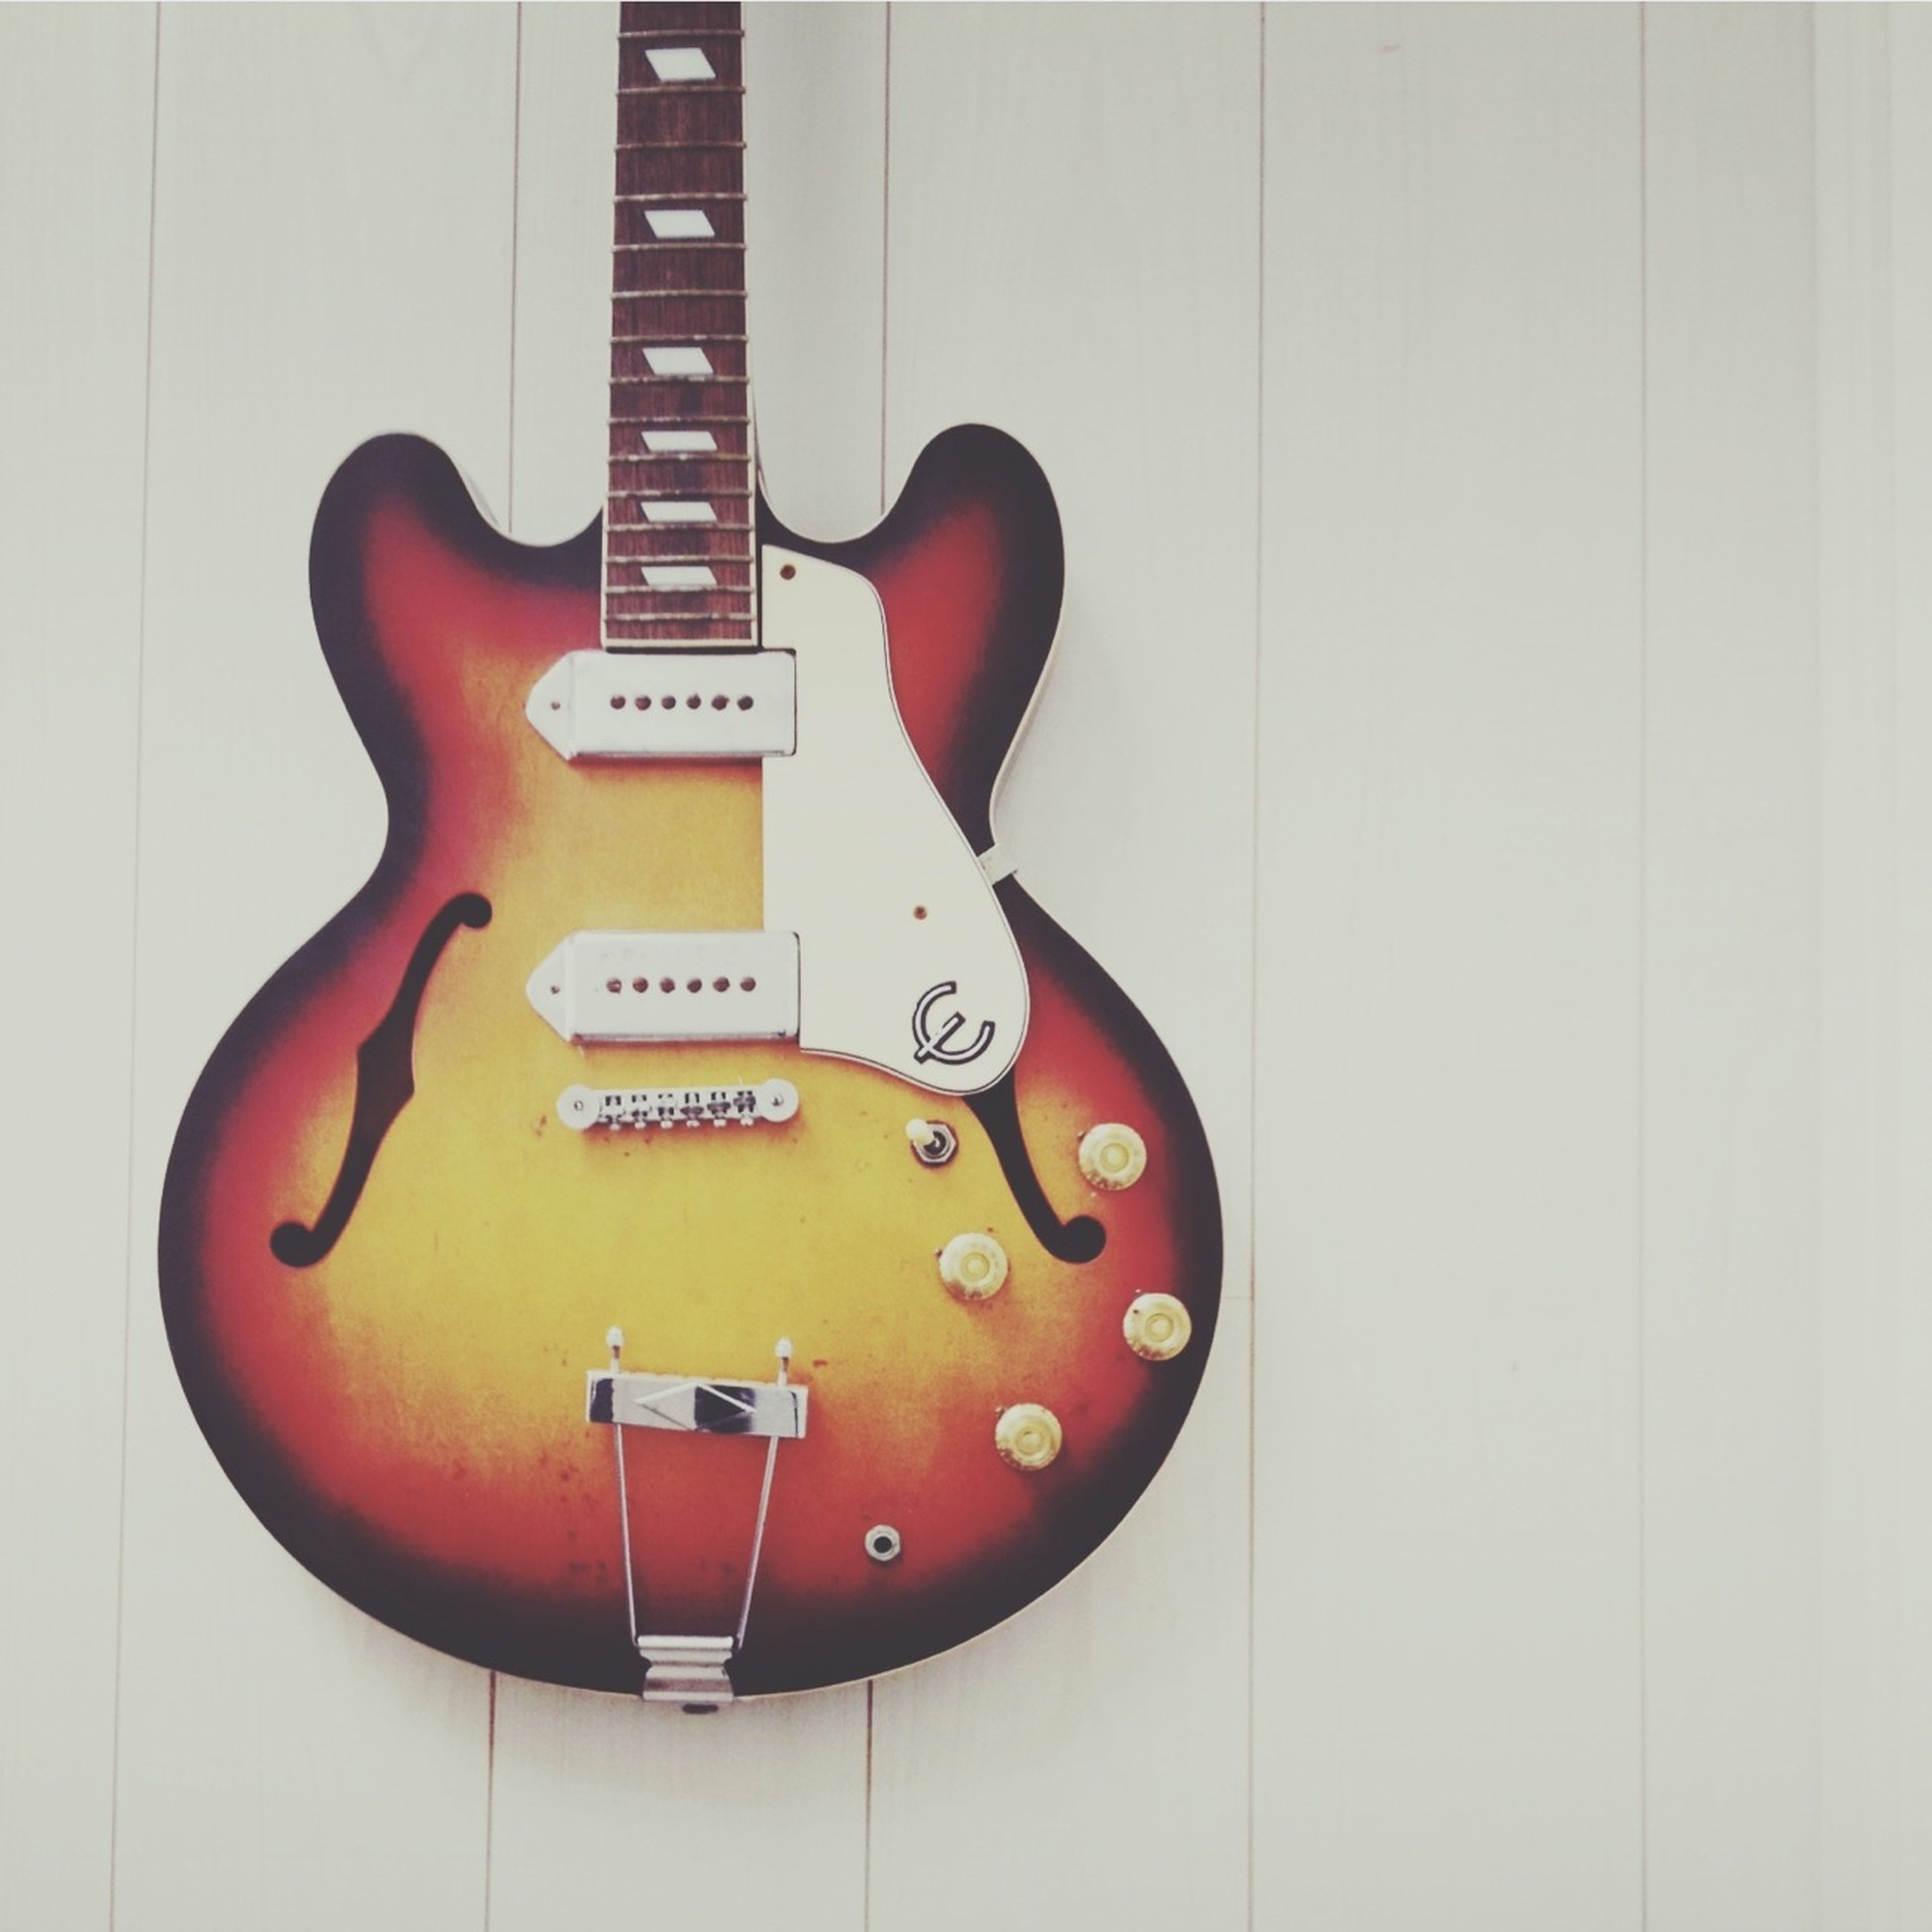 indoors, red, close-up, wall - building feature, single object, wood - material, door, still life, music, closed, no people, wall, musical instrument, metal, arts culture and entertainment, guitar, yellow, orange color, brown, communication